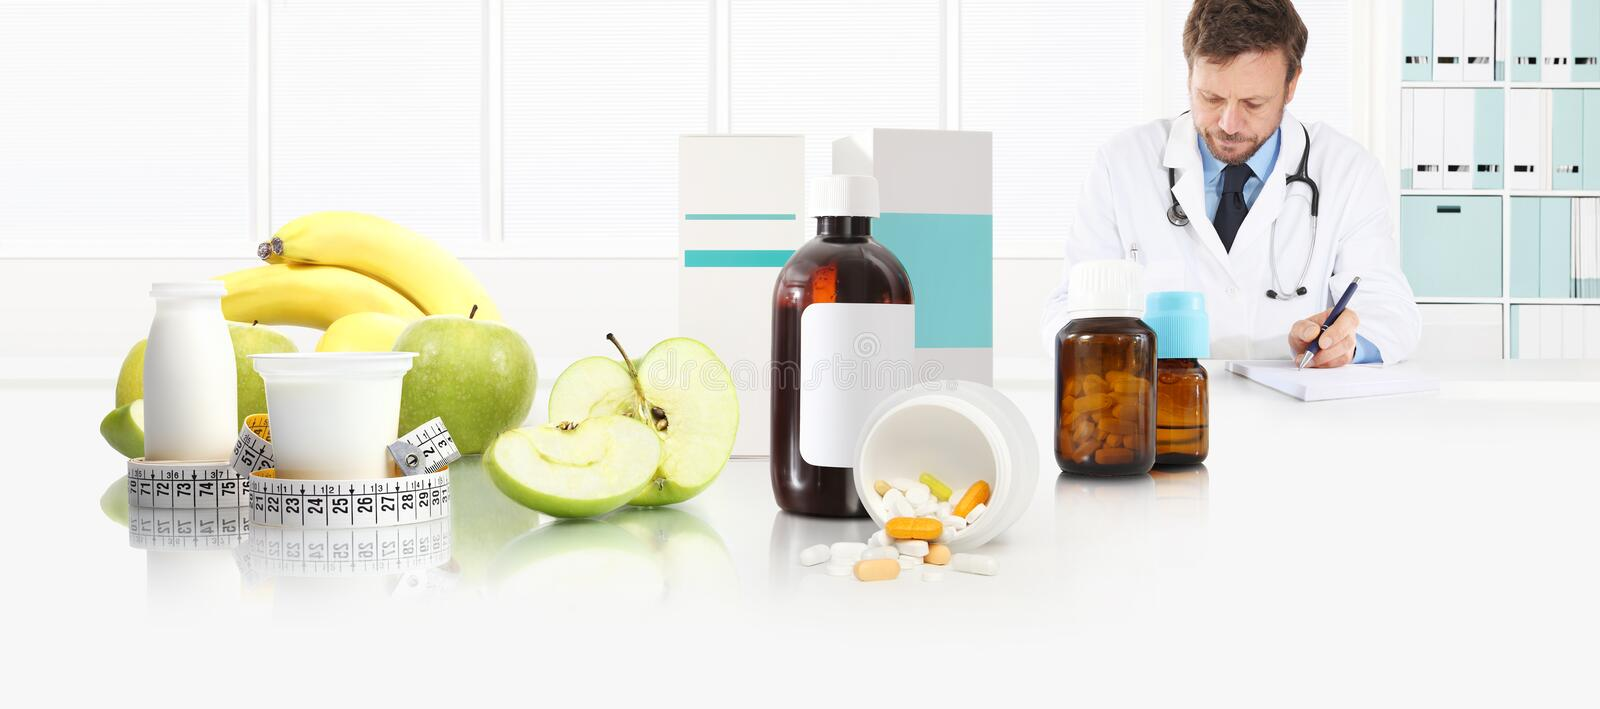 Dietitian nutritionist doctor prescribes prescription sitting at the desk office with apple, yogurt, medical drugs and tape meter royalty free stock photo